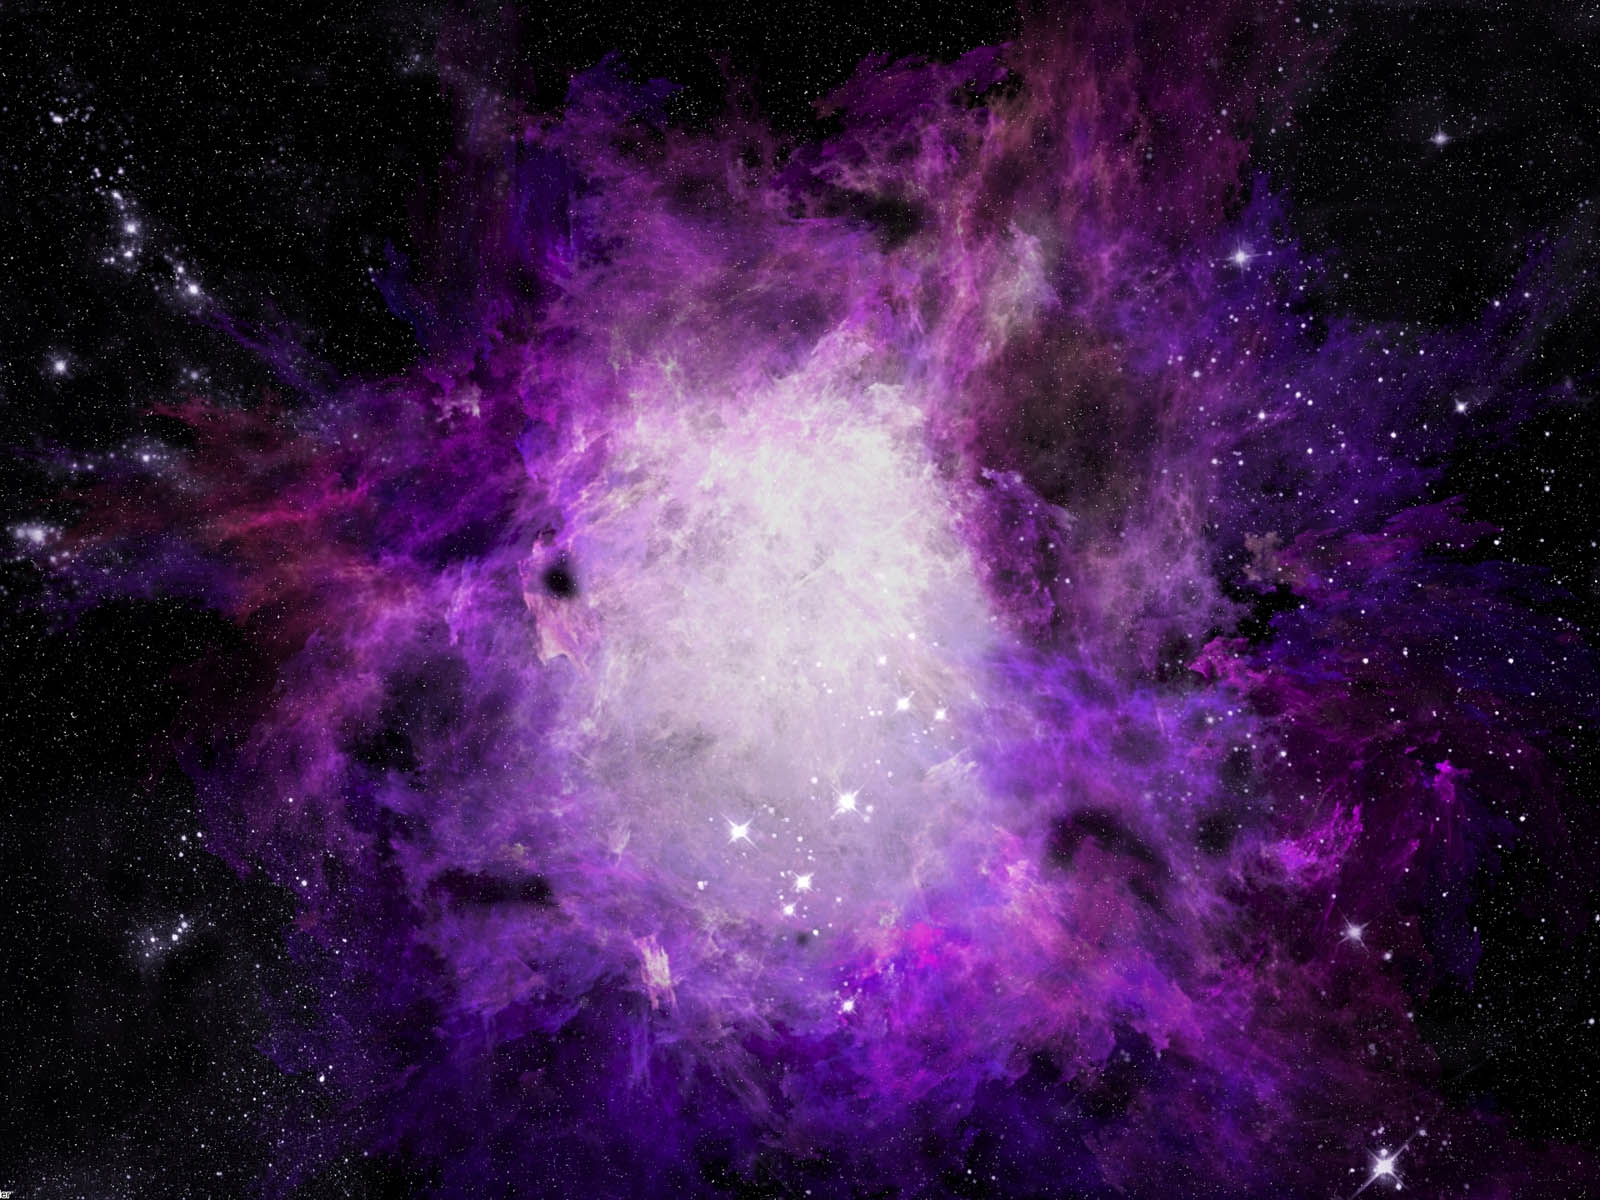 Crab Nebula Wallpapers Crab Nebula Desktop Wallpapers Crab Nebula 1600x1200